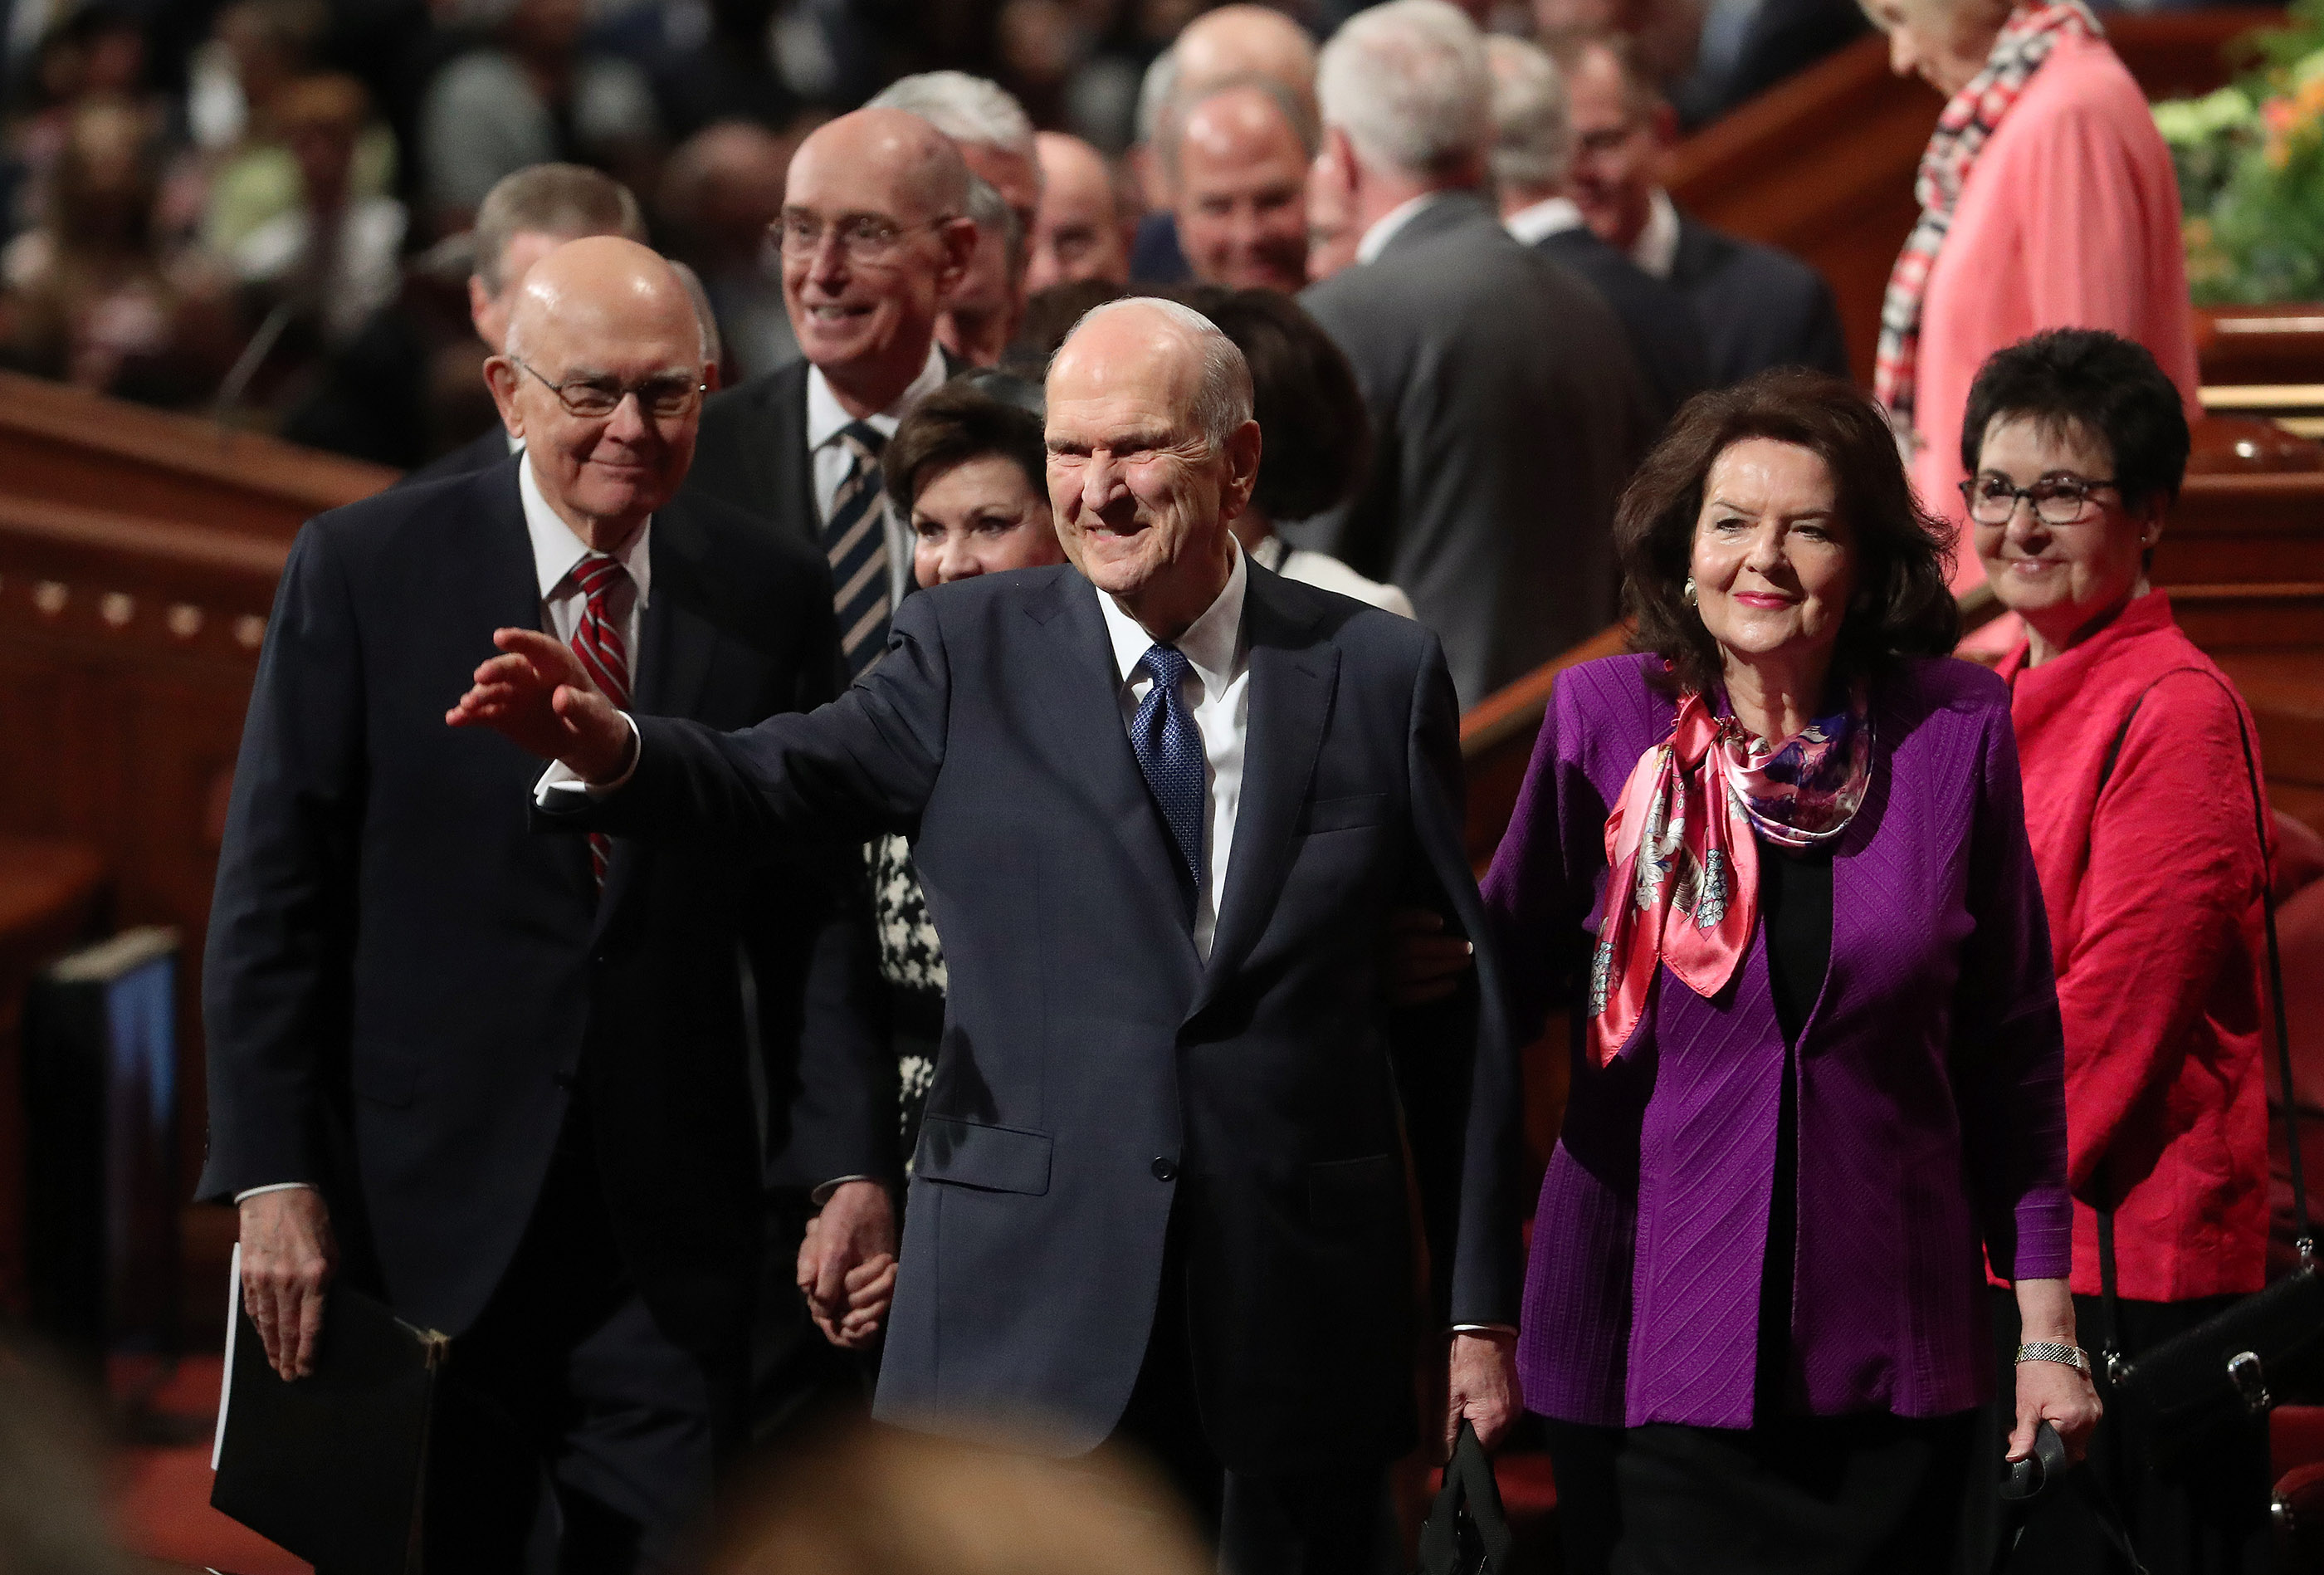 President Russell M. Nelson of The Church of Jesus Christ of Latter-day Saints, and his wife, Sister Wendy Nelson, wave to attendees after the Sunday morning session of the 189th Annual General Conference of The Church of Jesus Christ of Latter-day Saints in Salt Lake City on Sunday, April 7, 2019.